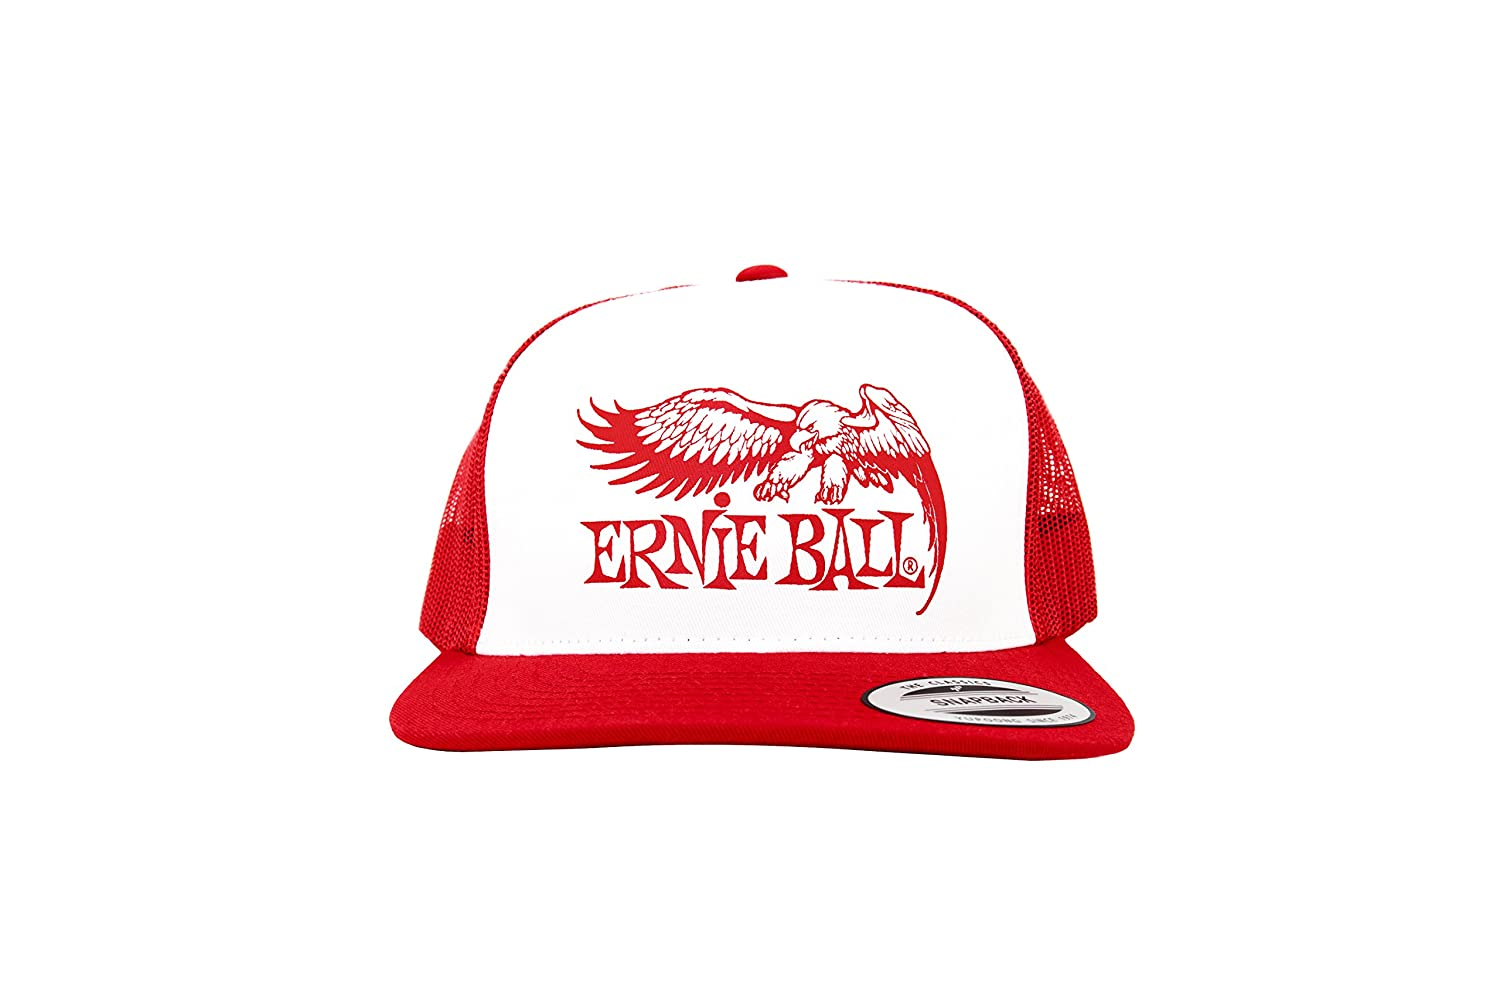 eeb90f623d2 Amazon.com  Ernie Ball Red with White Front and Red Ernie Ball Eagle Logo  Hat  Musical Instruments